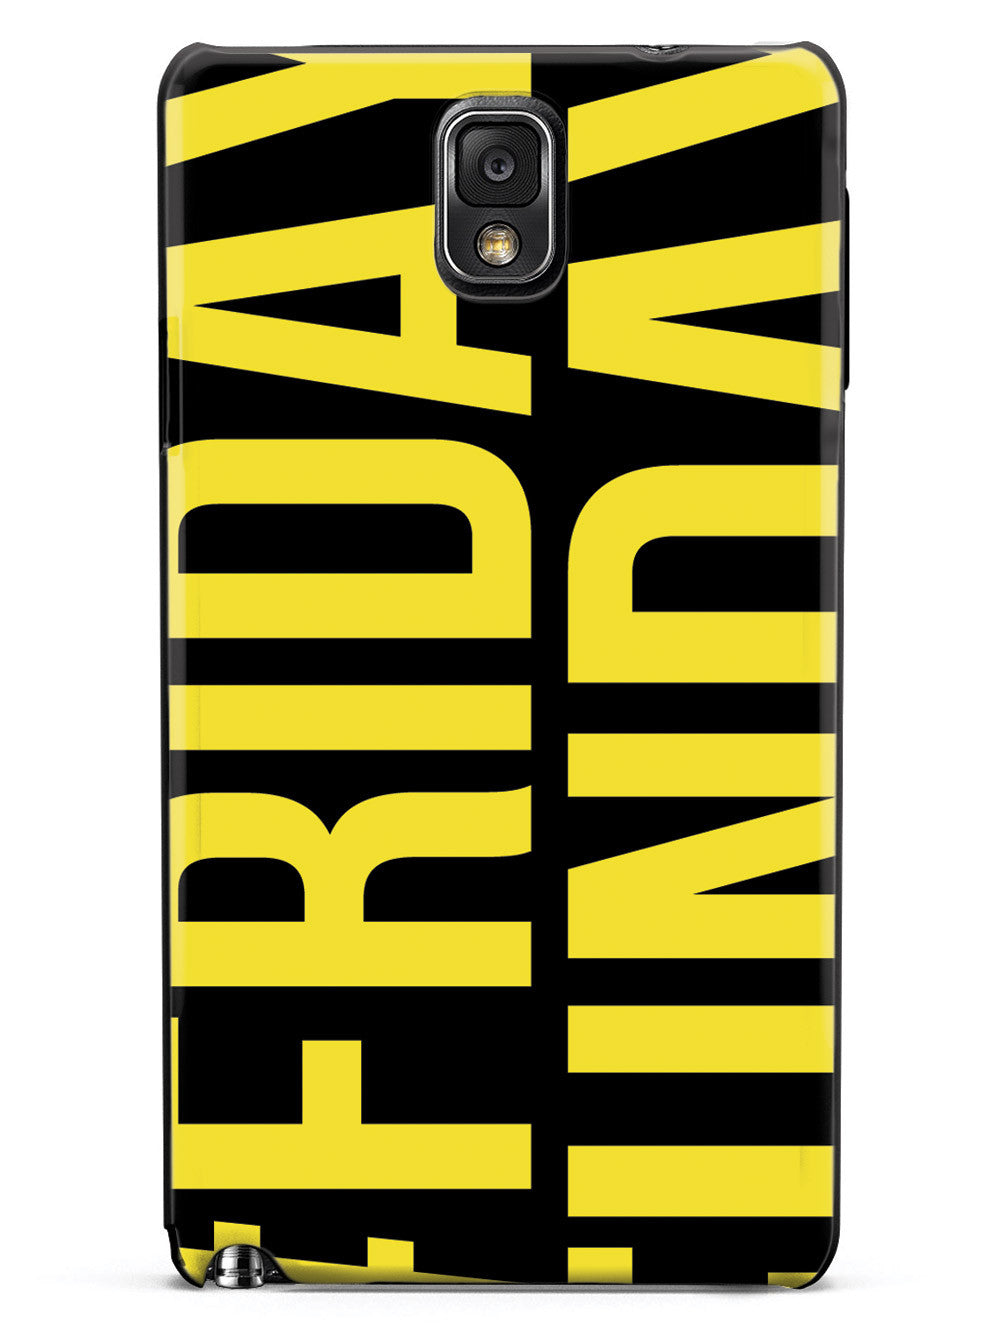 #FridayFunday Yellow Friday Fun Day  Case